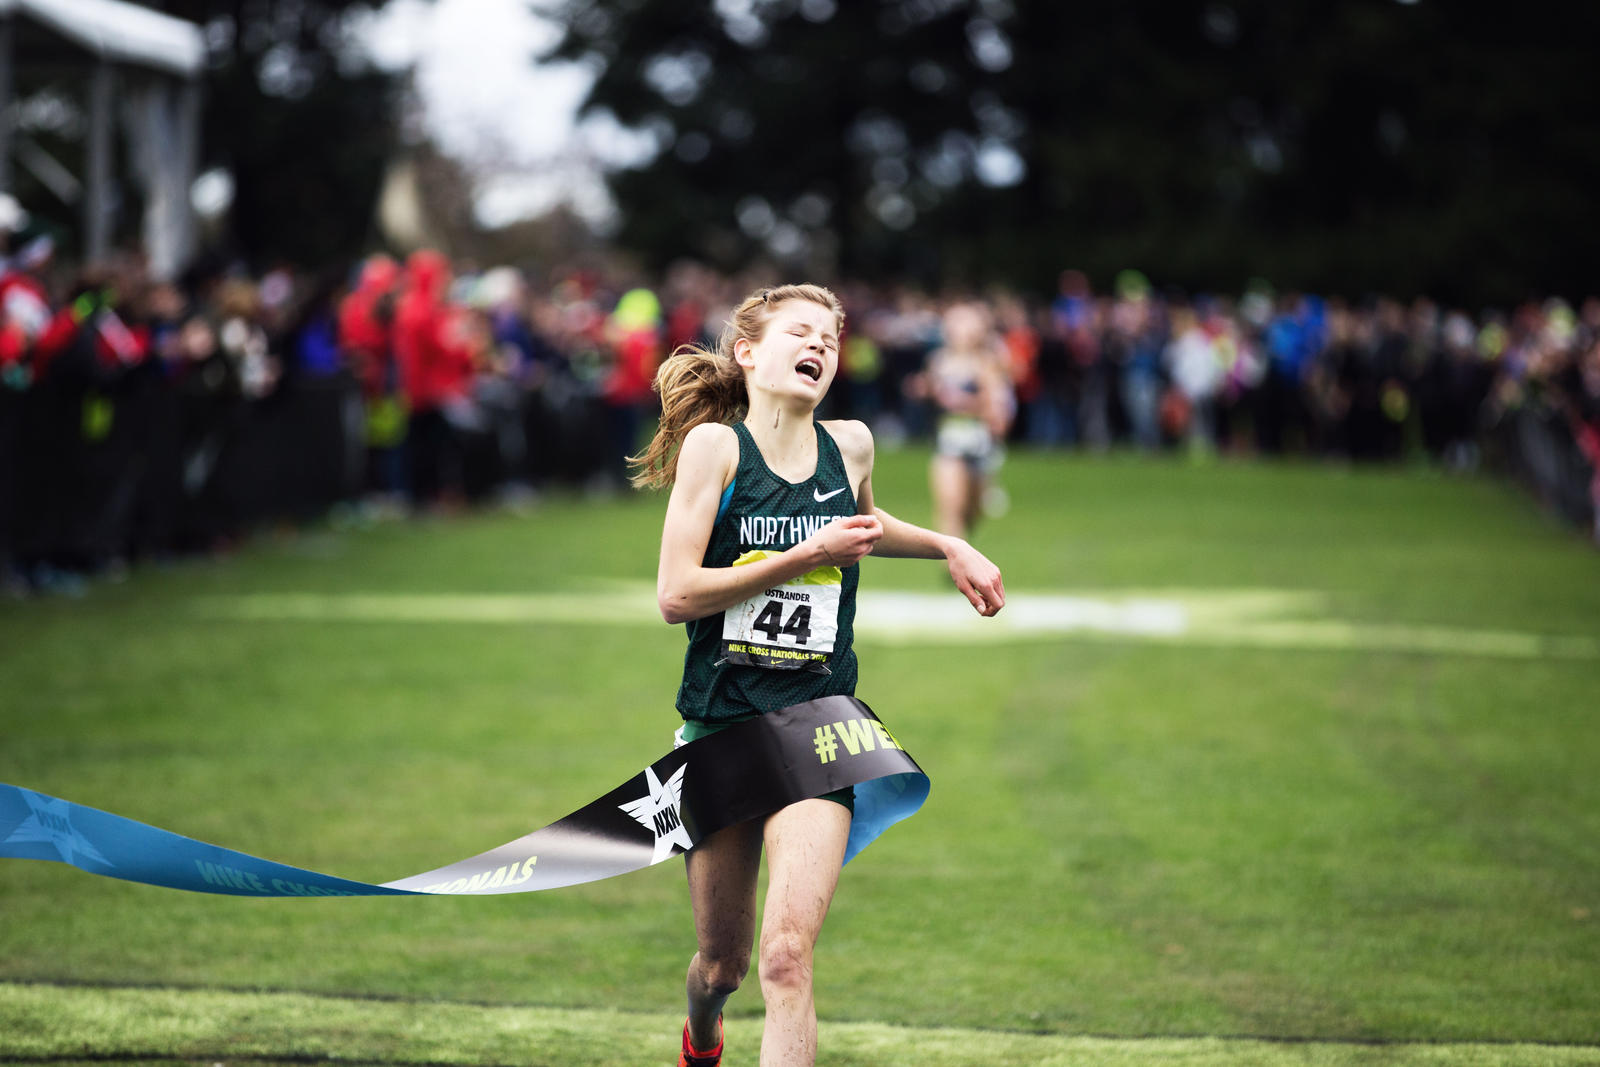 Nike agrees to give Fayetteville Manlius High School's cross country